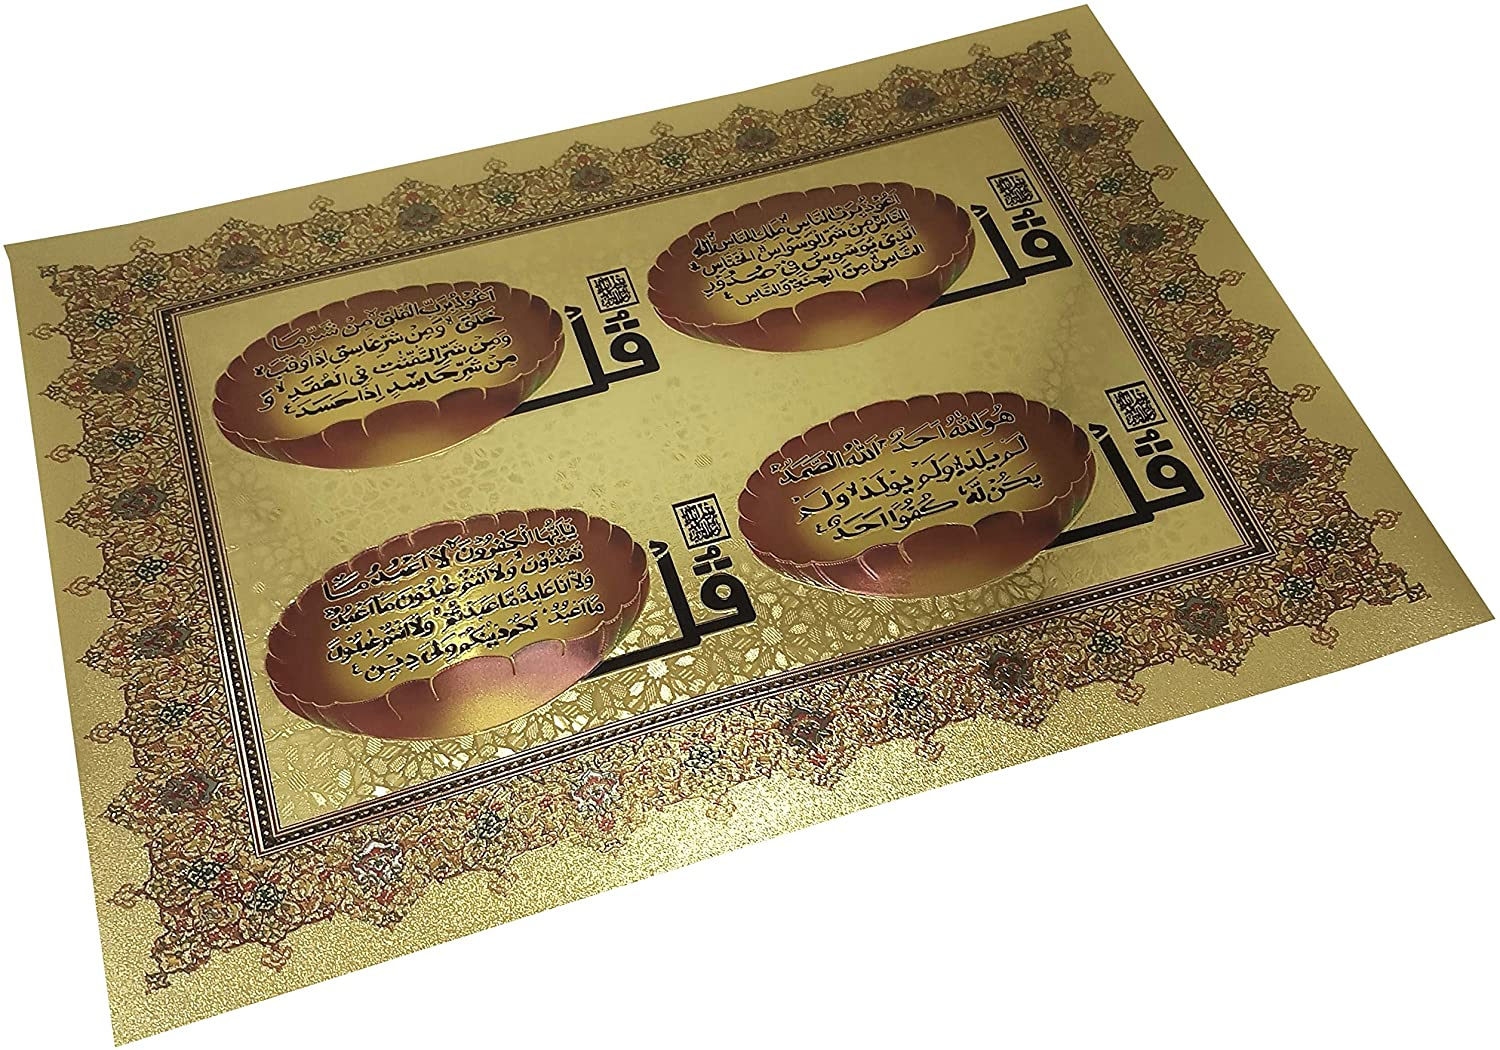 Islam Decorative Poster Sheet AMN-243 Wall Decor Arabic Printed Image Quran Verse Calligraphy Glitter Gold Color Design Muslim Gift No Frame (Surah 4 Quls)